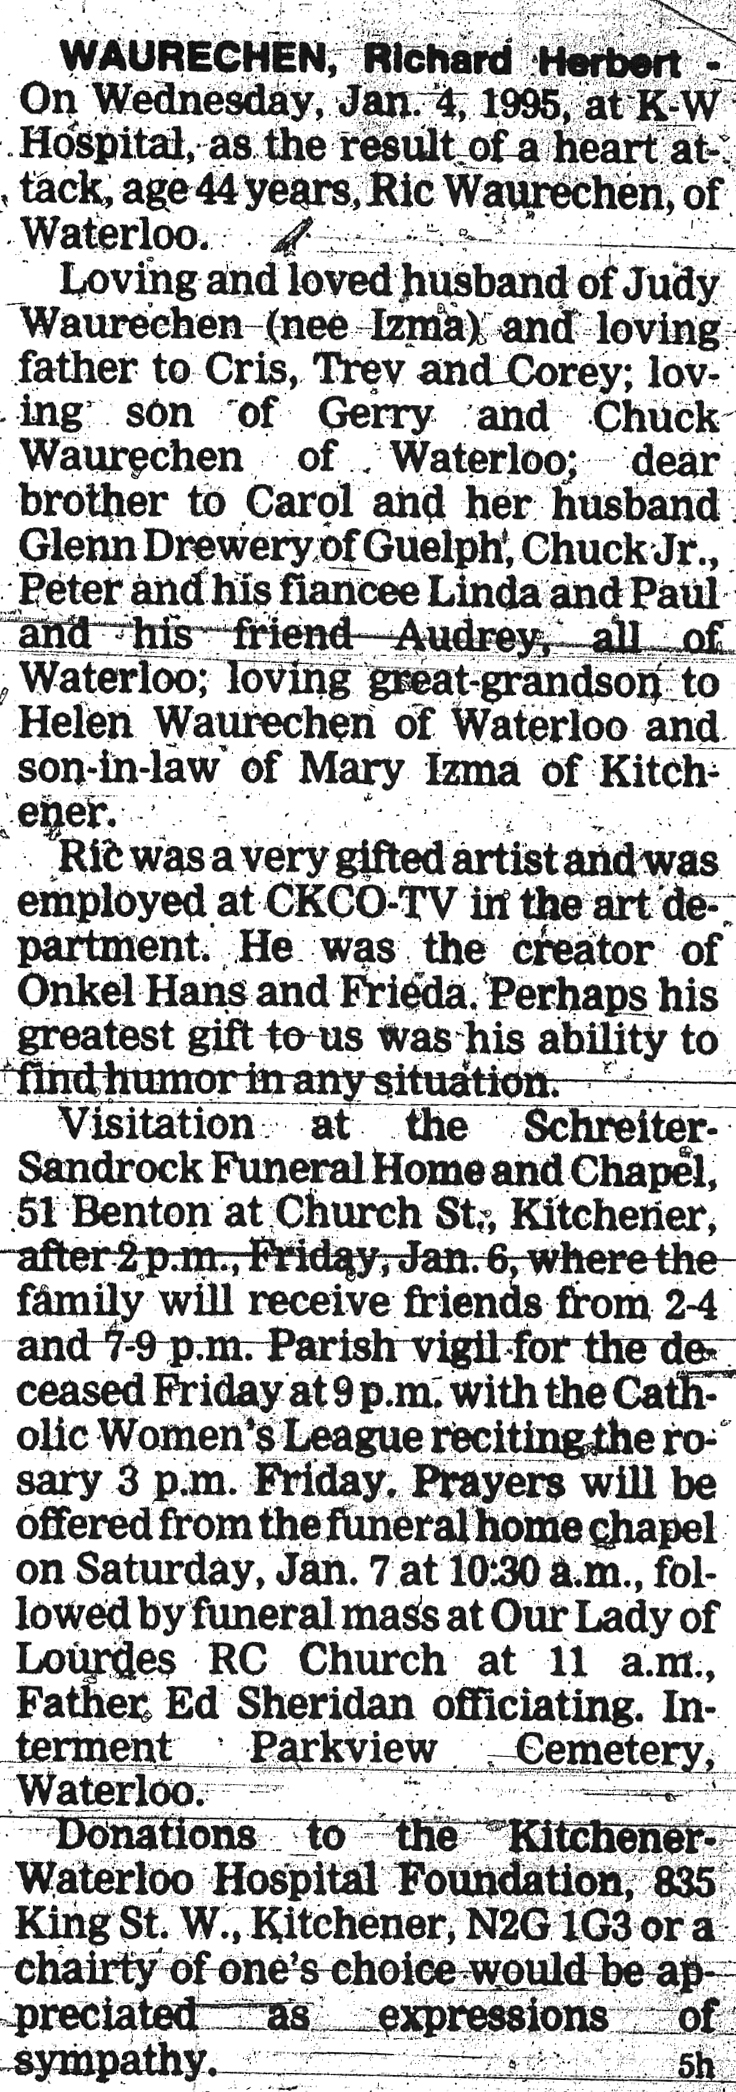 Waurechen, Richard Herbert - January 4, 1995 - Obit